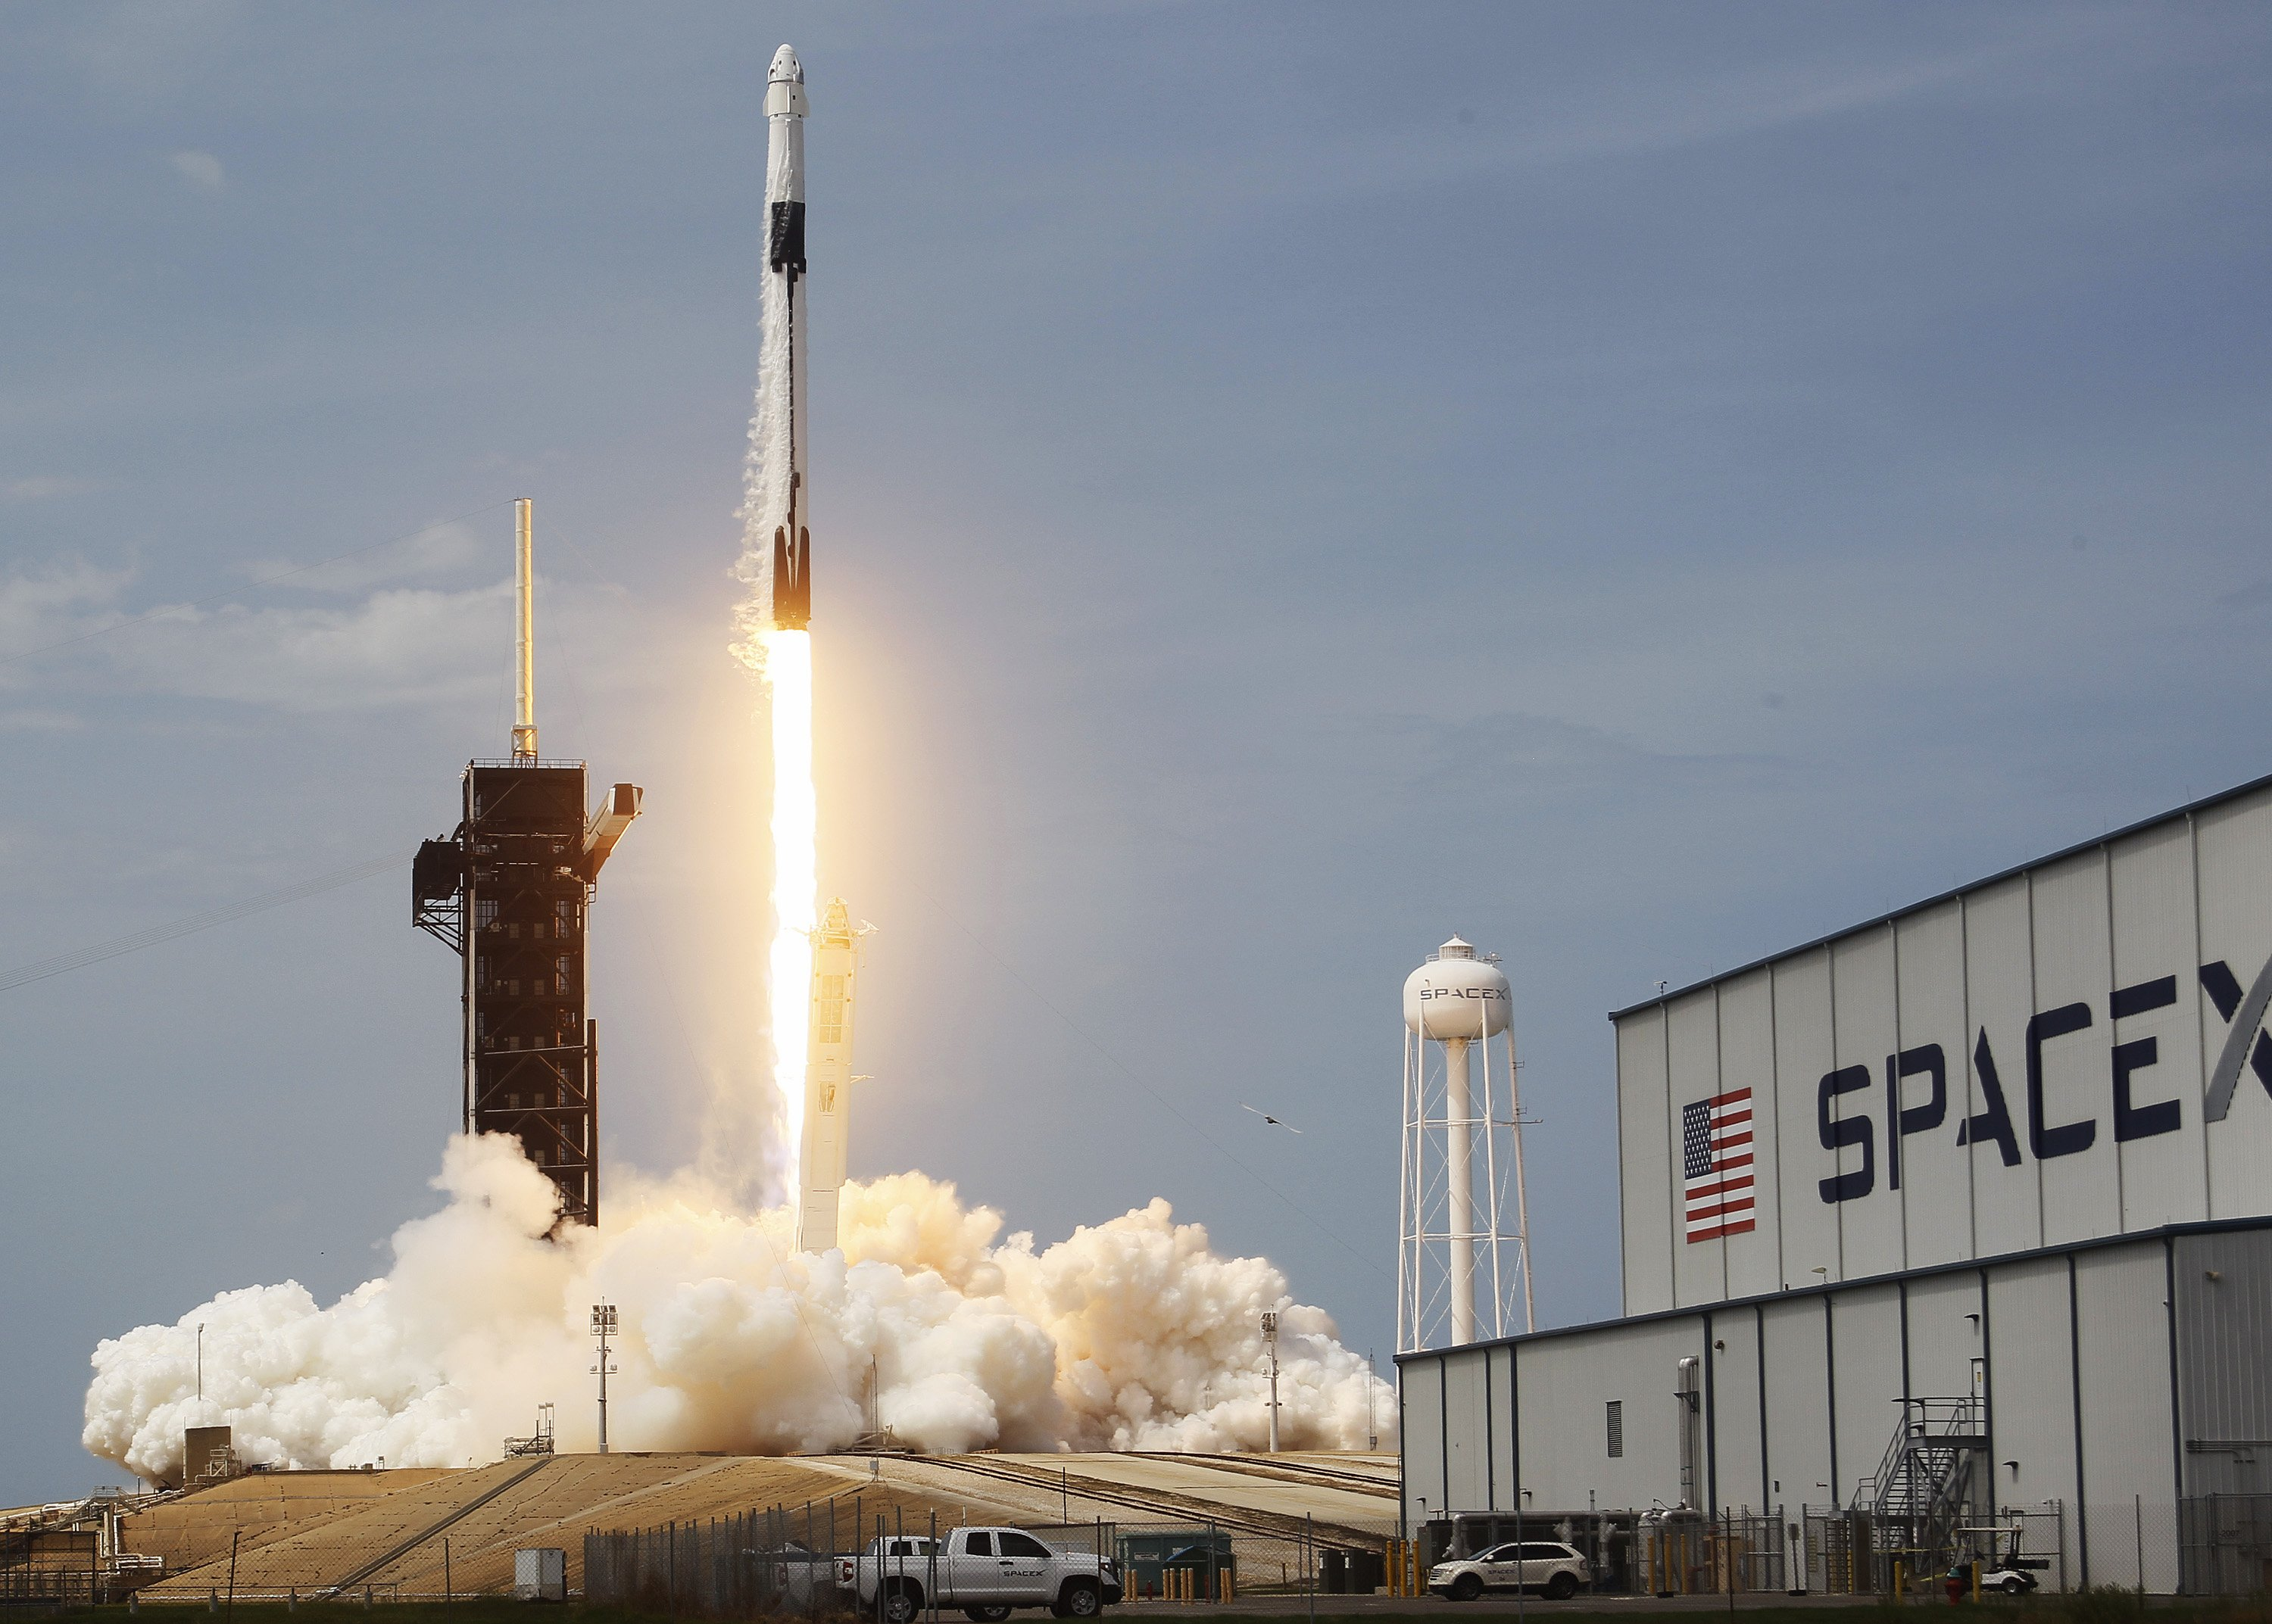 A modernized space shuttle manufactured by SpaceX owned by Elon Musk. | Photo: Getty Images